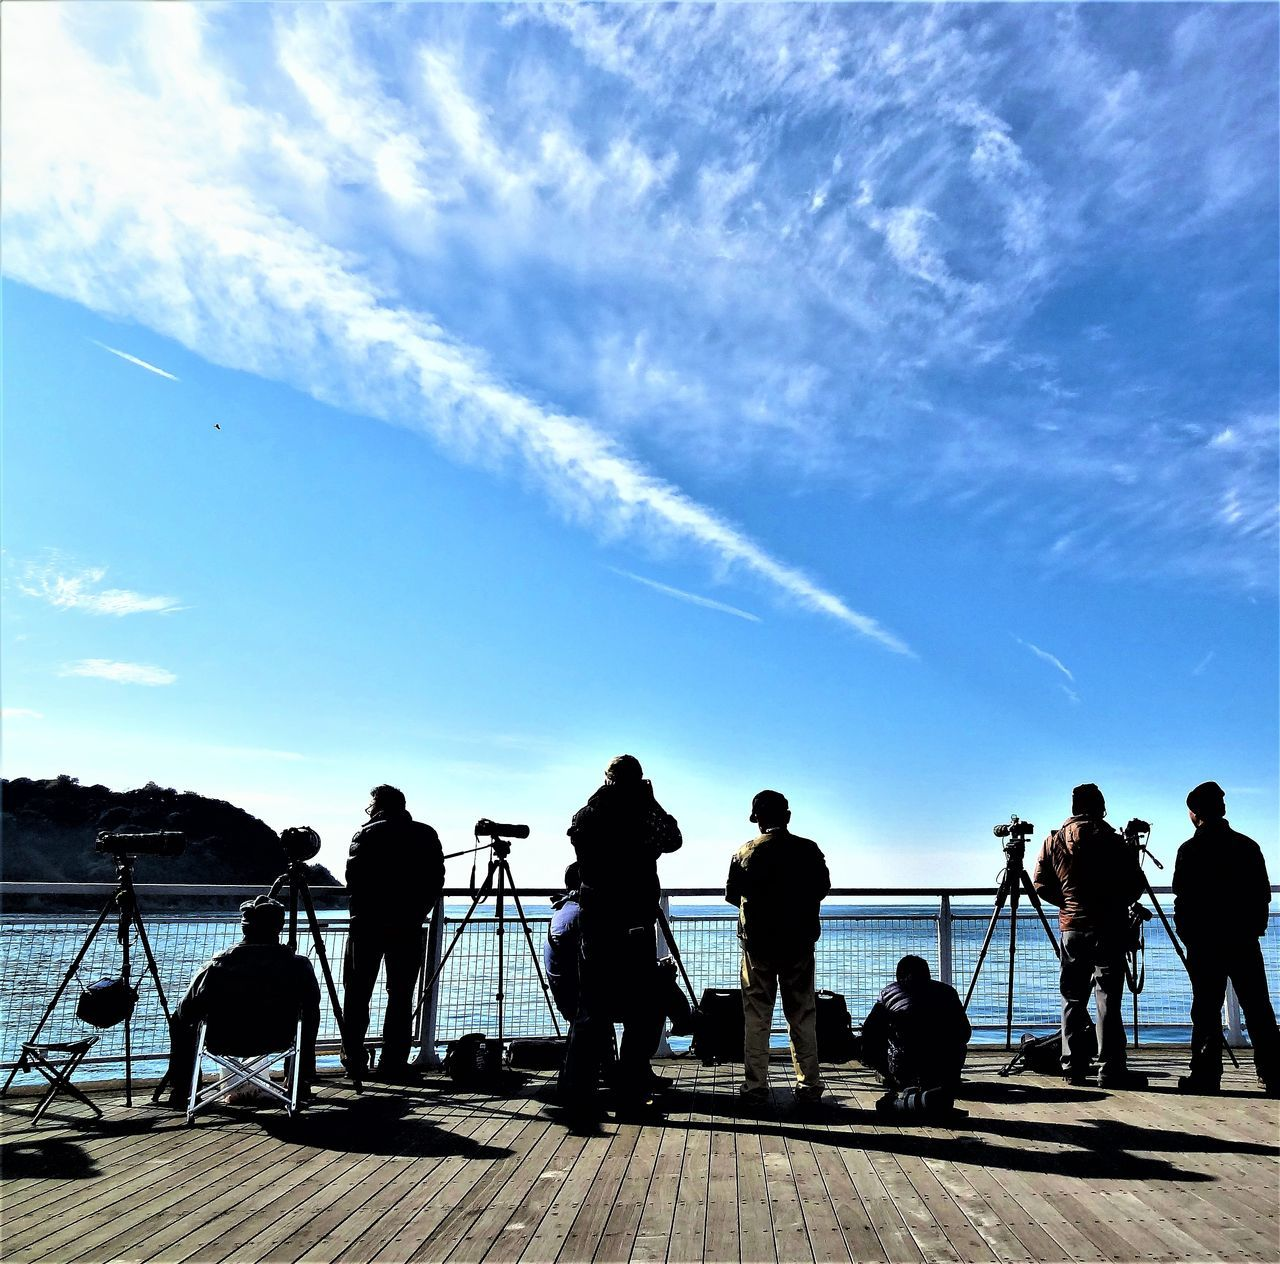 Photographer looking for birds to shoot Adult Adults Only Beauty In Nature Boat Deck Camearaphotography Camera Capture The Moment Cloud - Sky Clouds And Sky Day Men Nature Outdoors People Photograph Photographer Photographer In The Shot Photography Themes Real People Scenics Sea Sky Standing Water Women